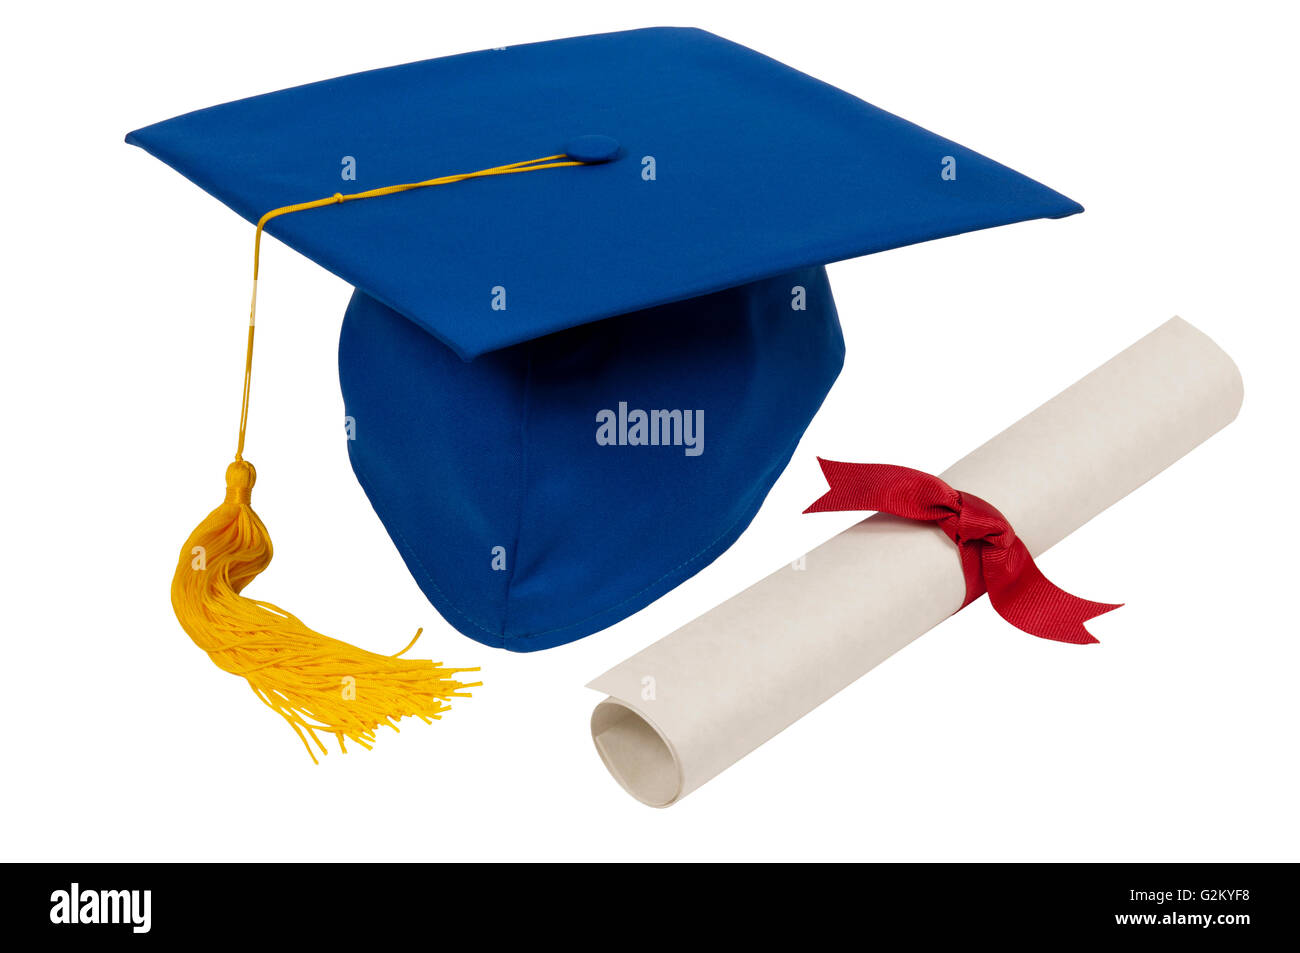 Blue Graduation Hat With Yellow Tassel And Diploma Isolated On White - Stock Image